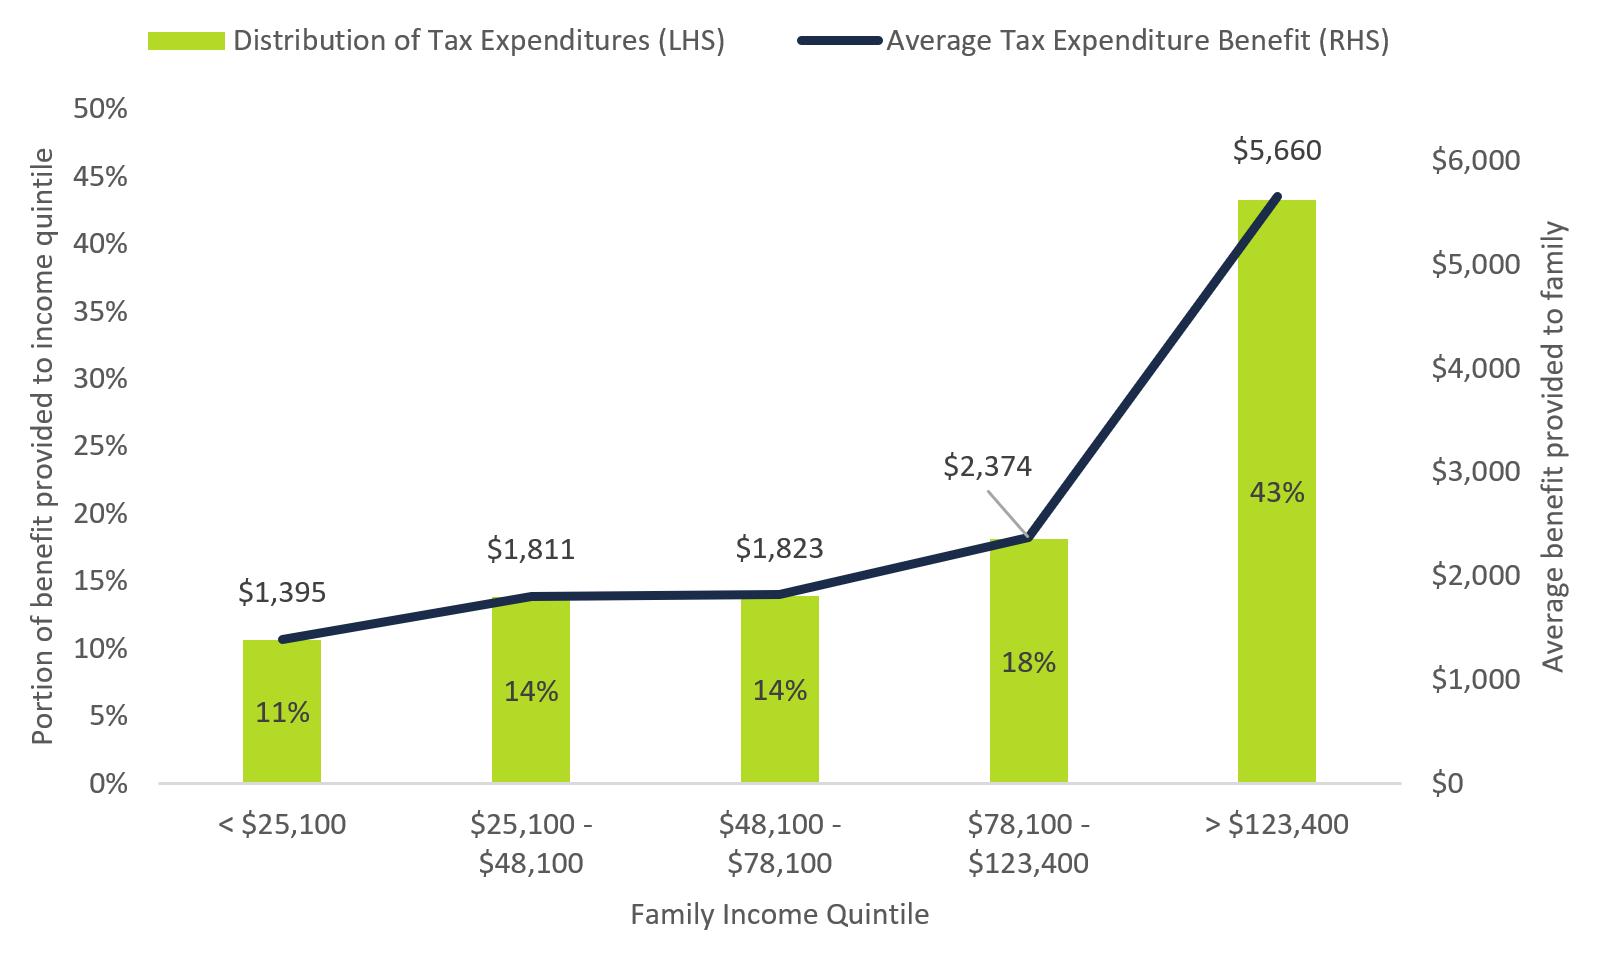 Figure 5 1: PIT tax expenditure benefits are concentrated at the top of the family income distribution